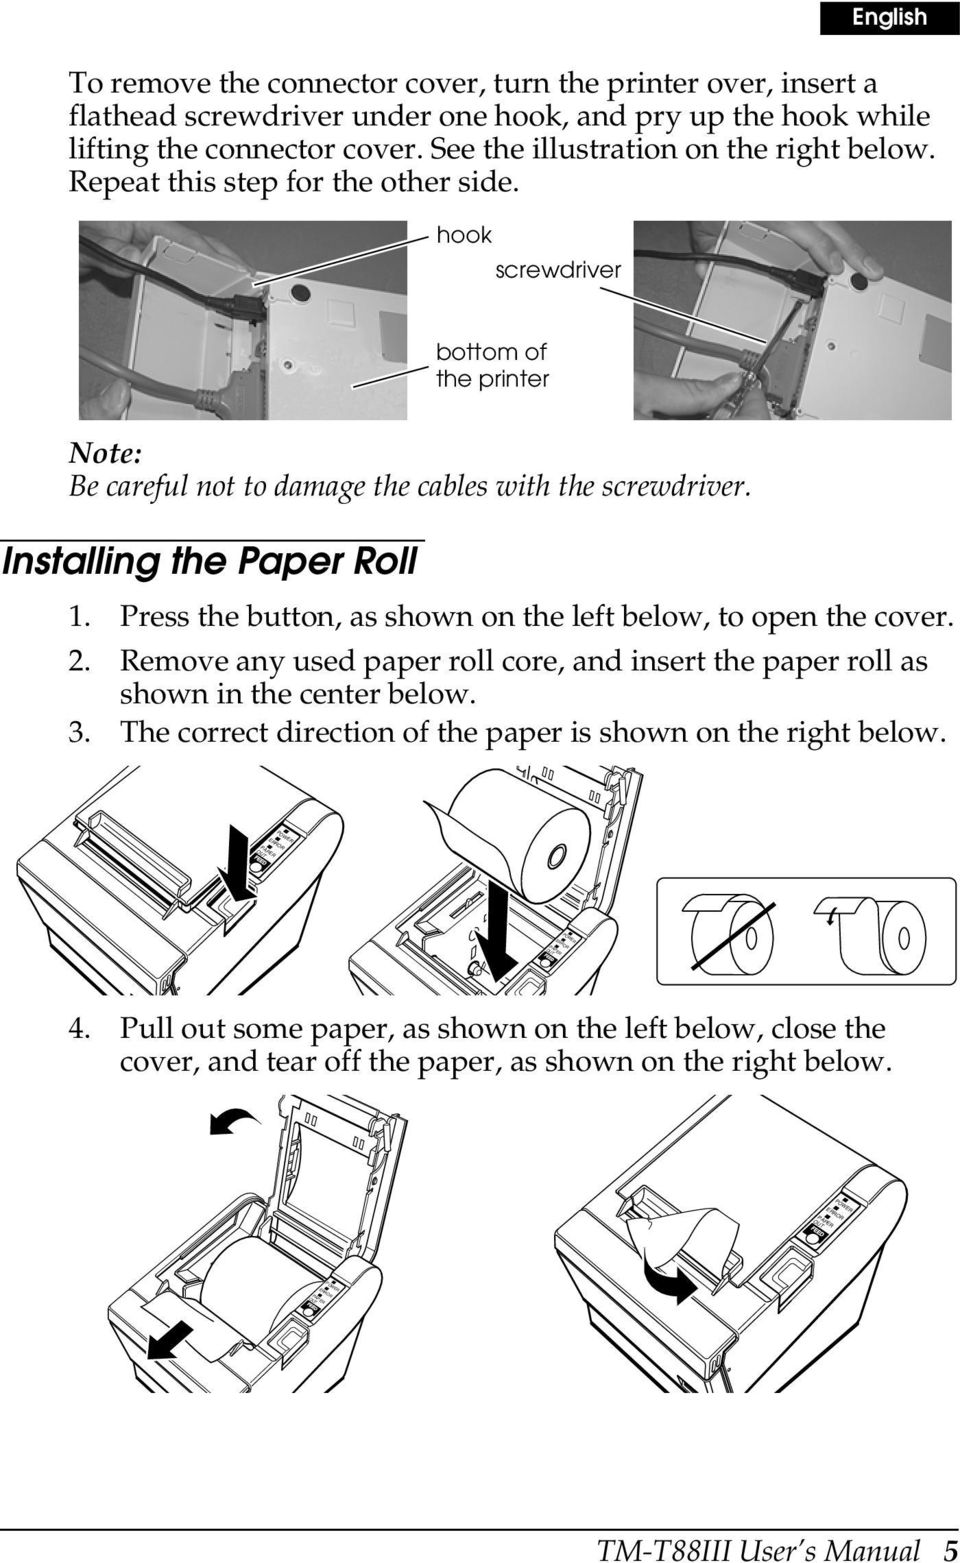 hook screwdriver bottom of the printer Note: Be careful not to damage the cables with the screwdriver. Installing the Paper Roll 1. Press the button, as shown on the left below, to open the cover. 2.